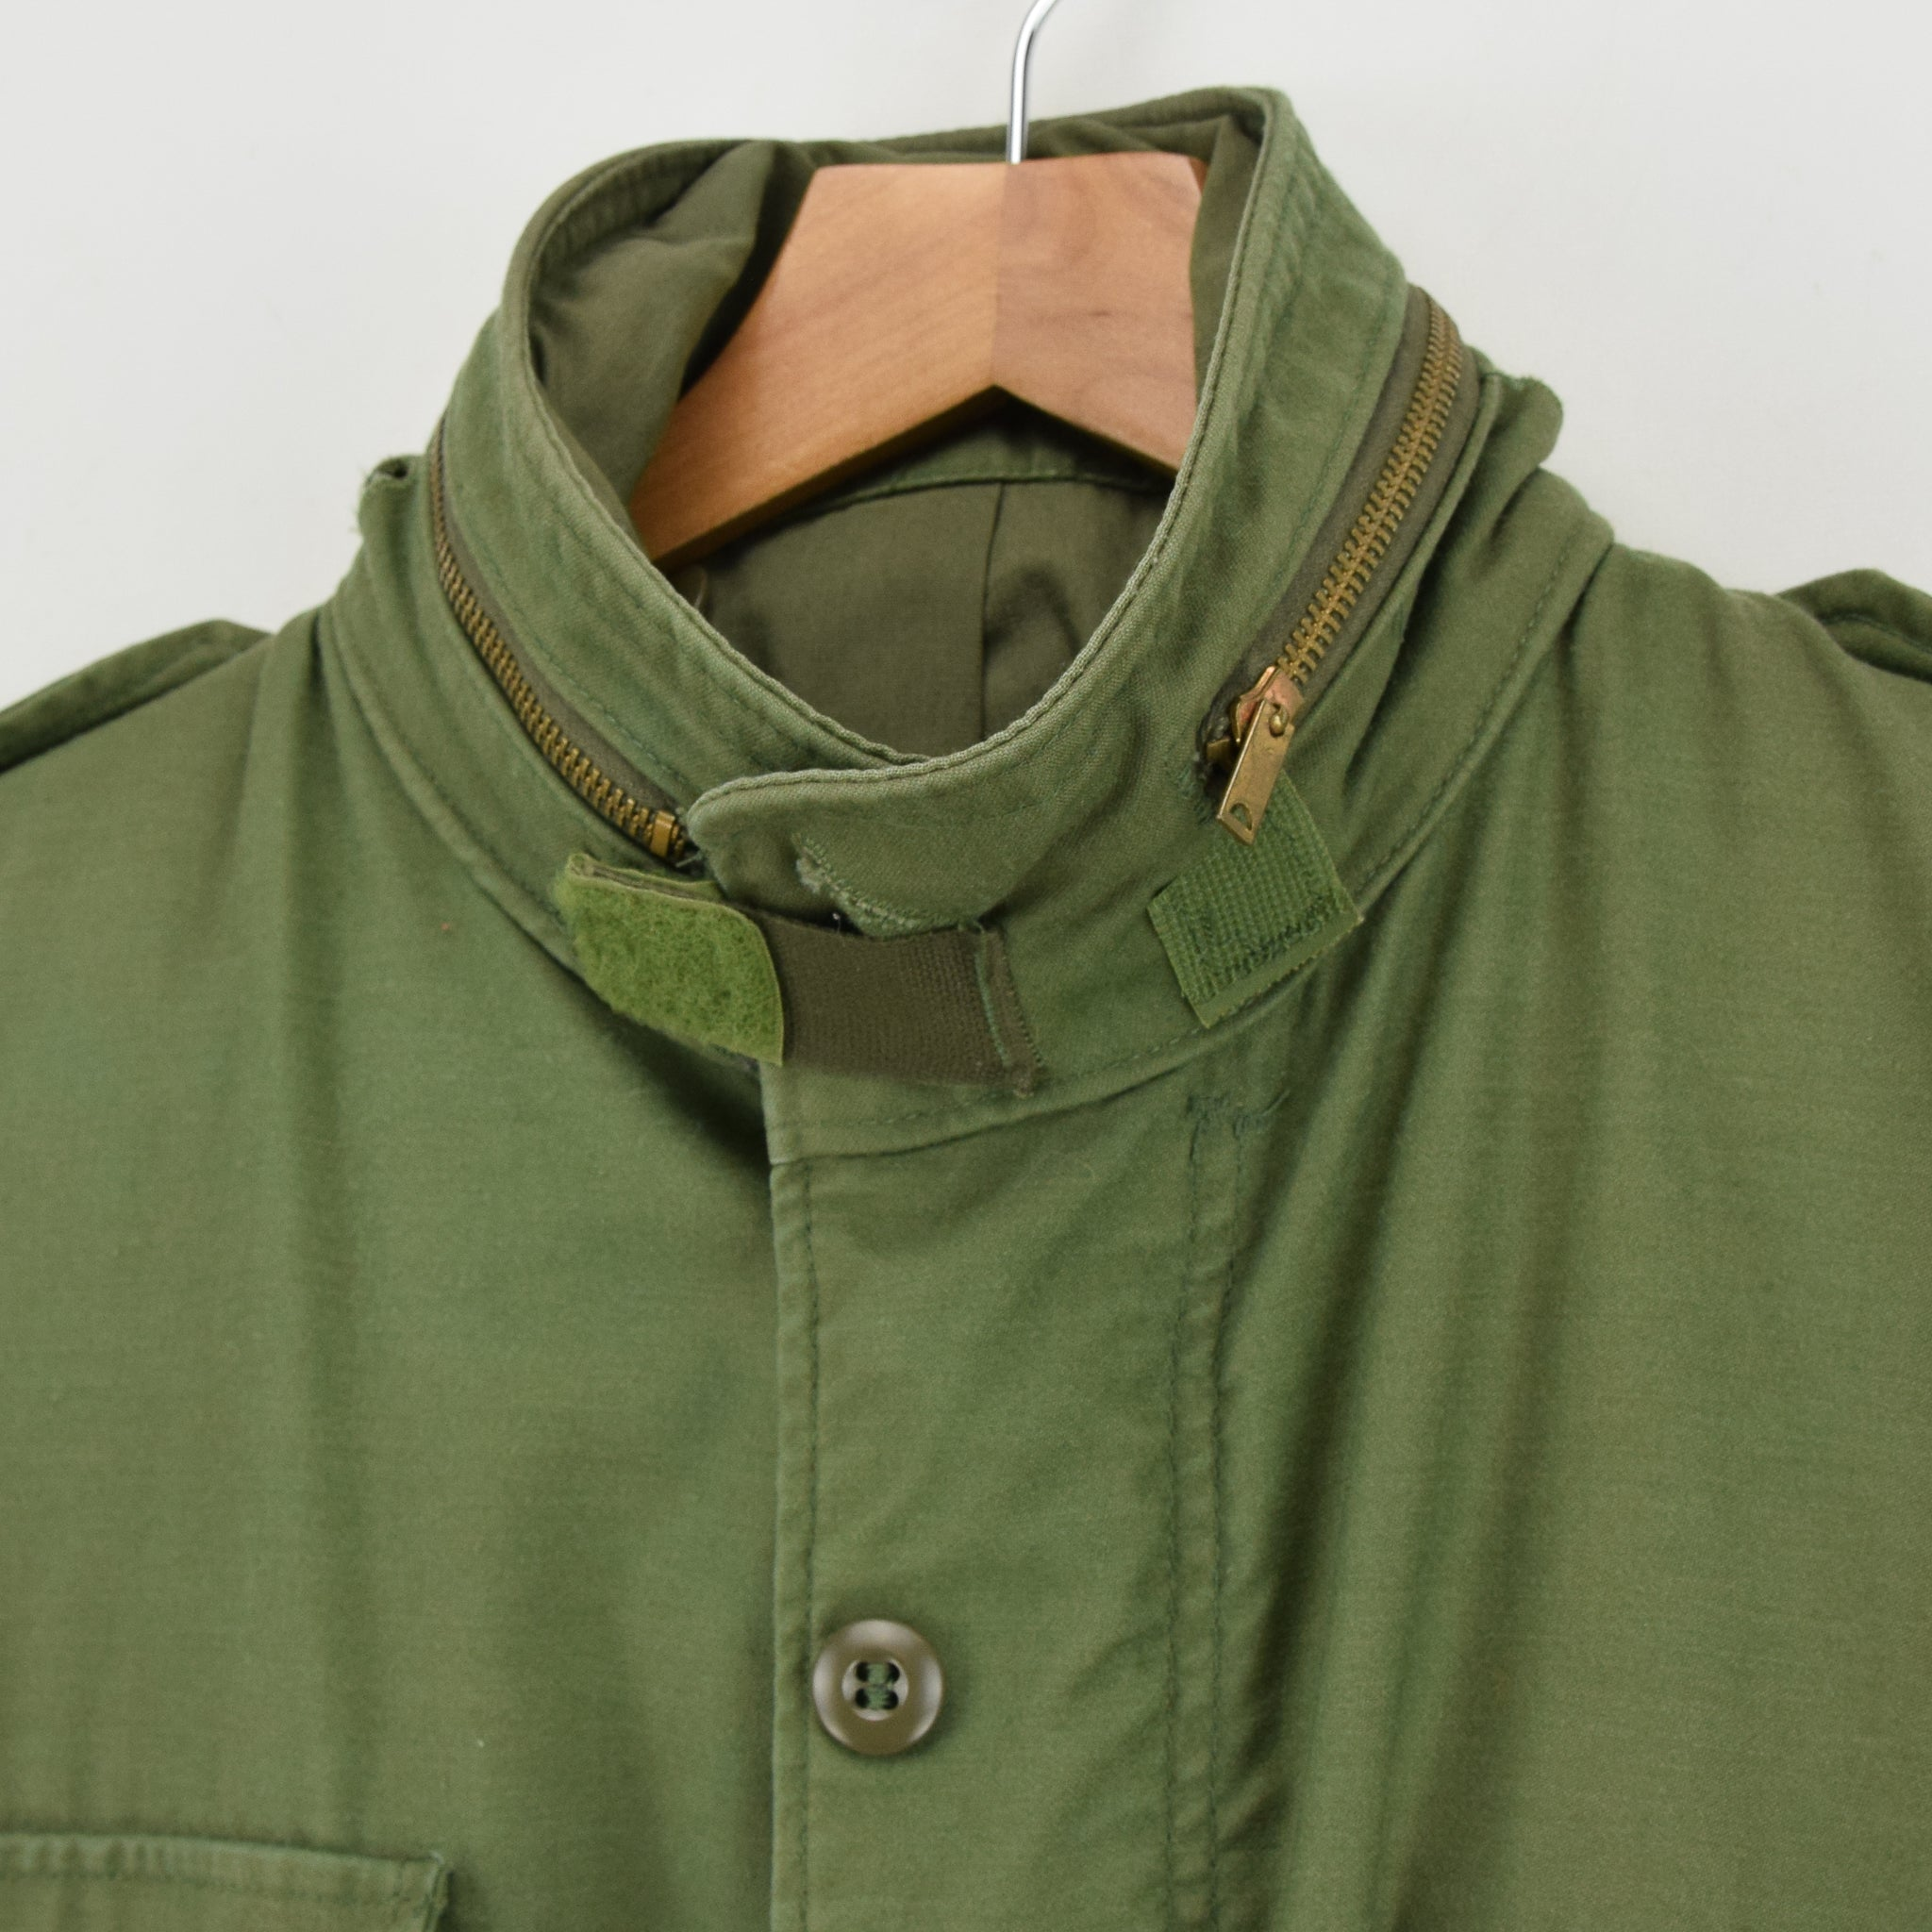 Vintage 80s M-65 Man's Cold Weather Field Military Army Jacket M Reg collar